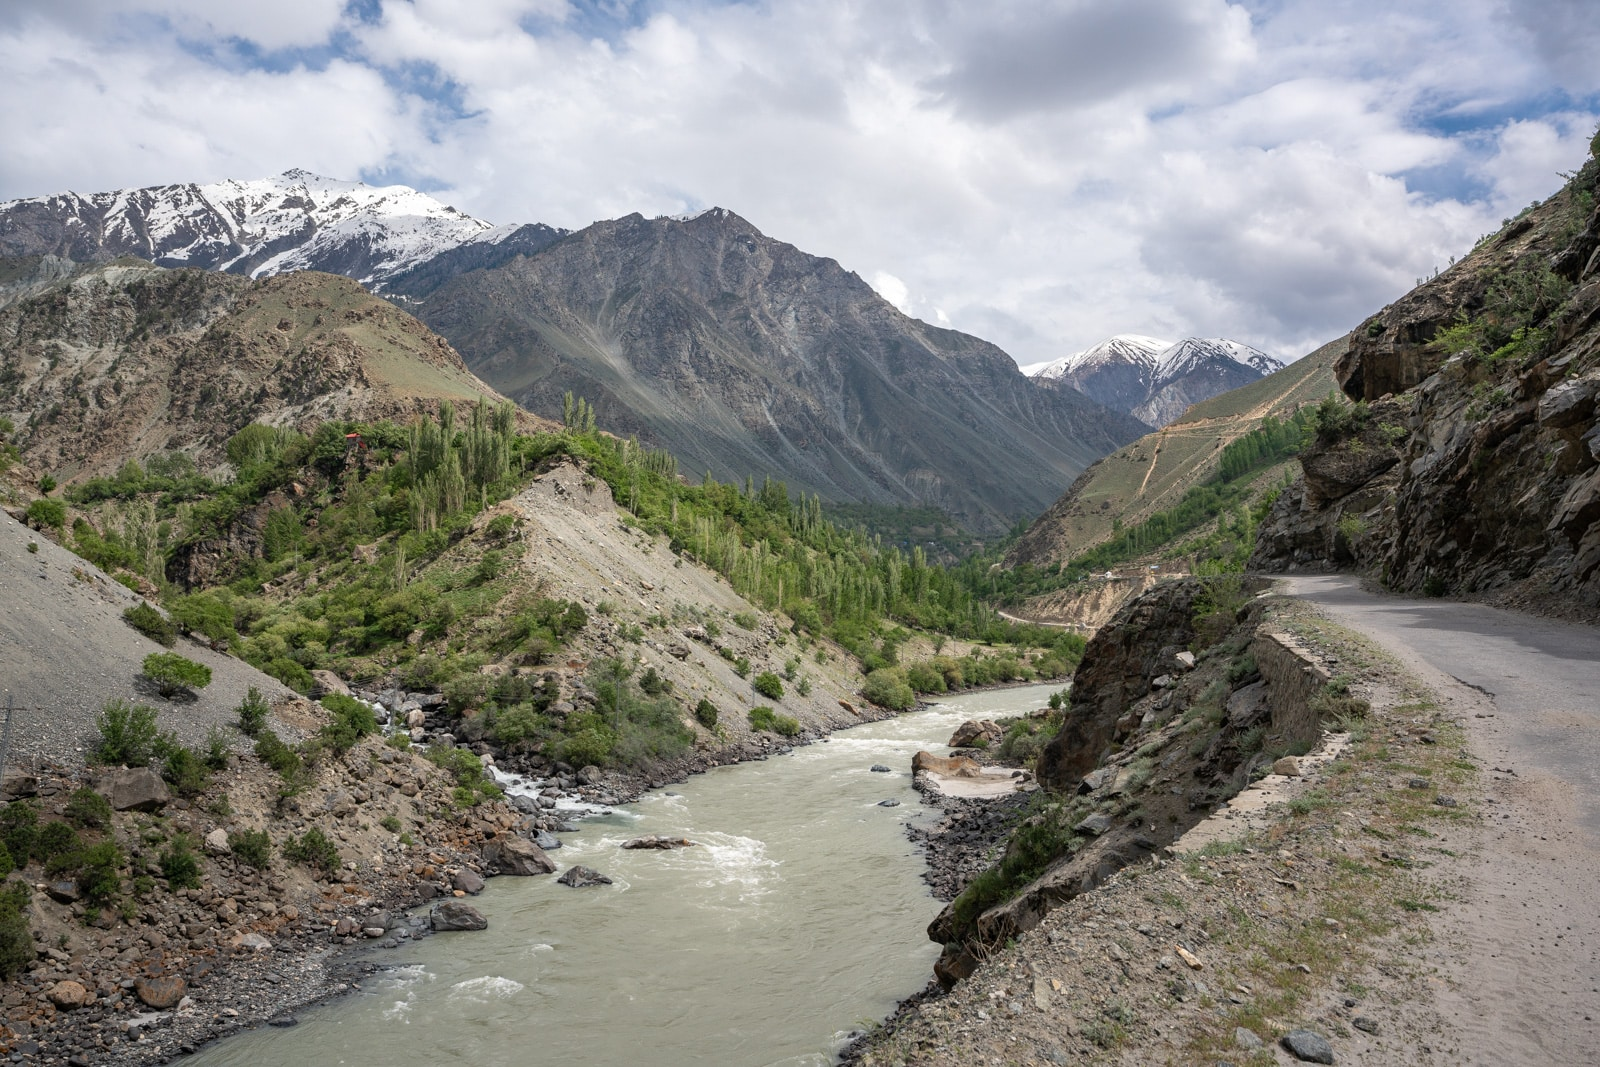 The road to Astore, Pakistan